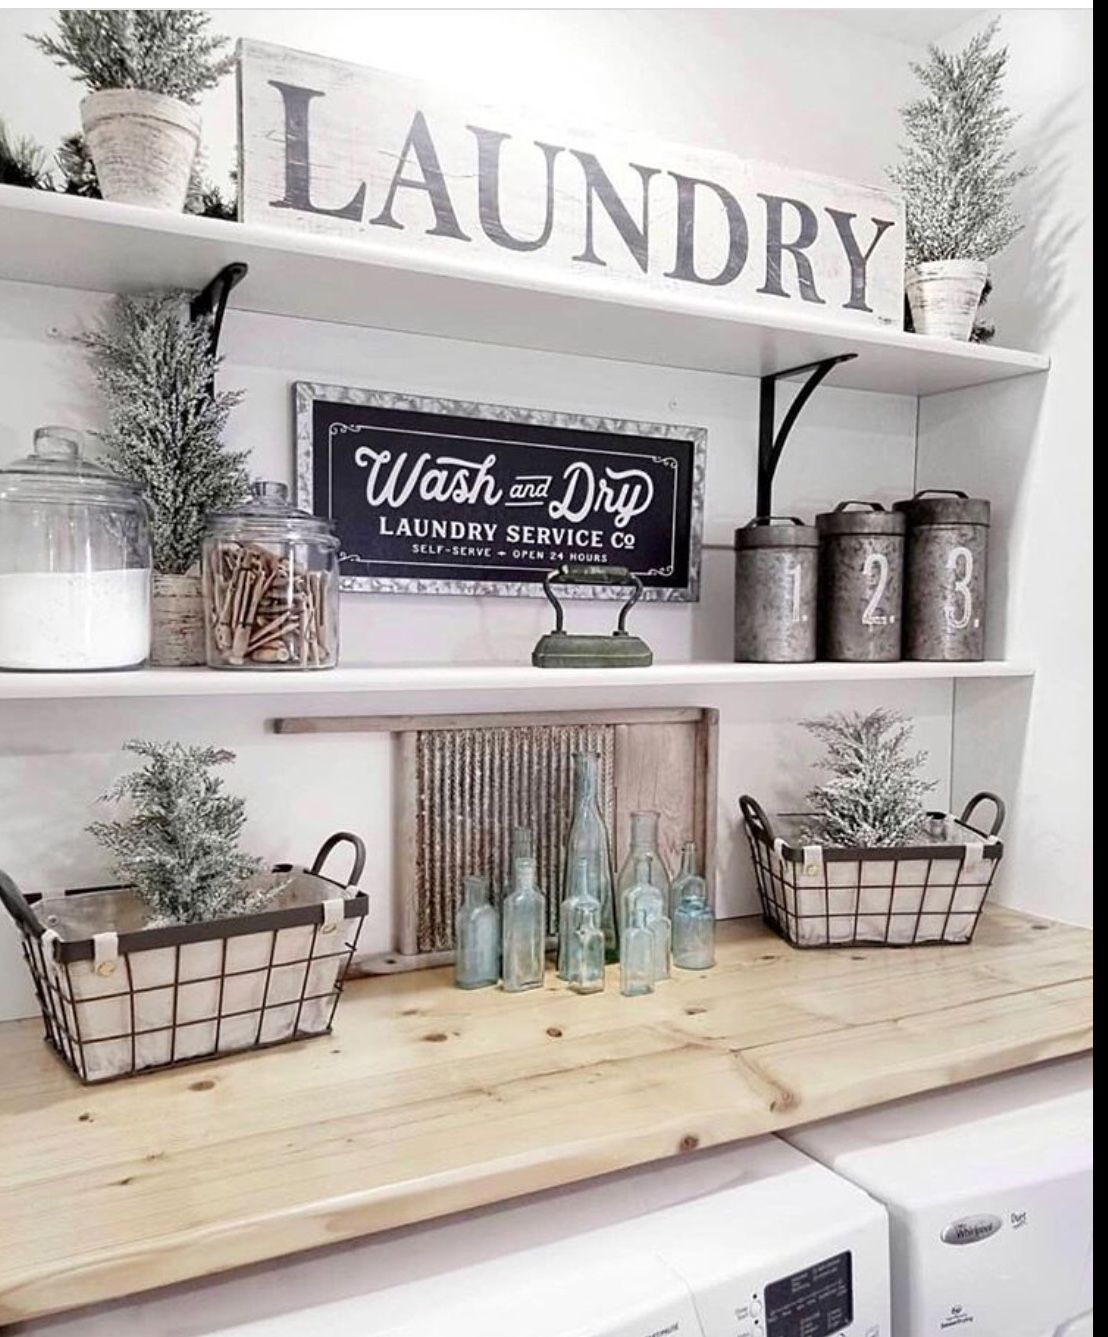 Laundry Room Wood Countertops With Laundry Signs Wash And Dry